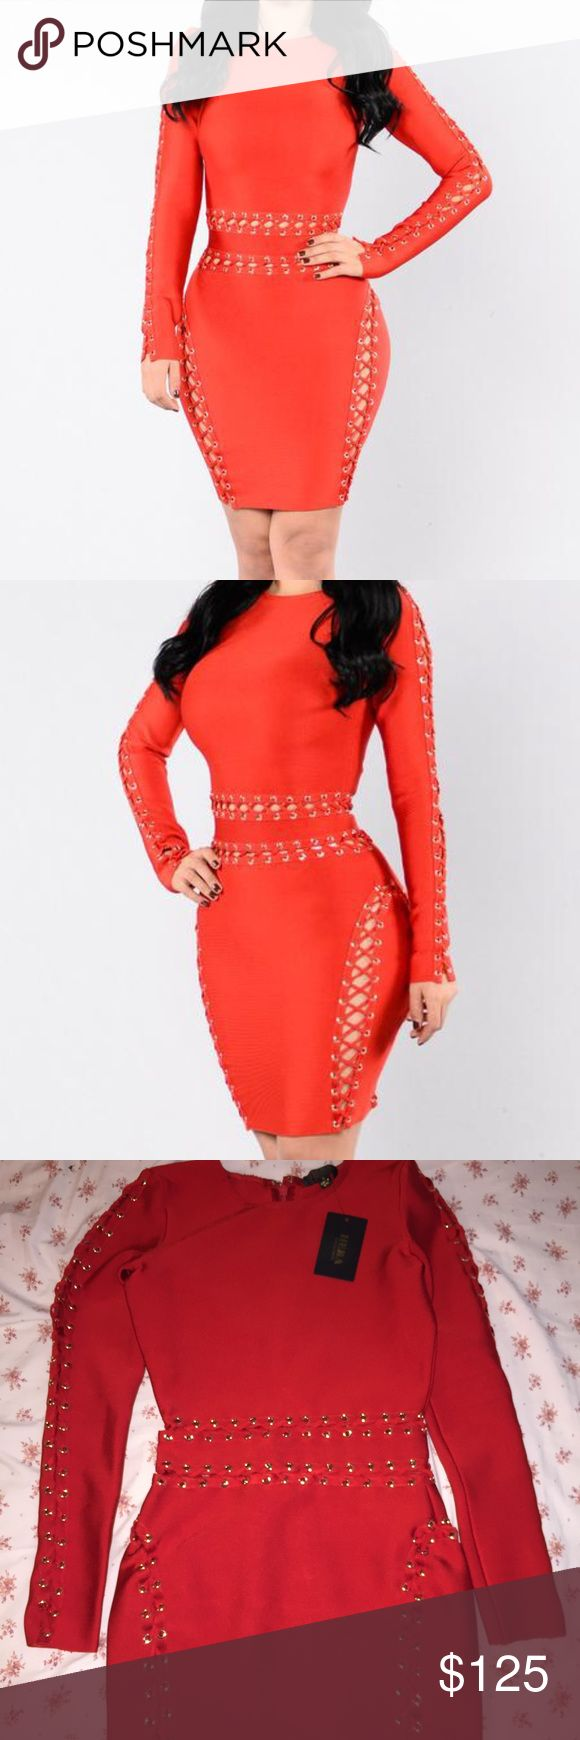 NWT- Red/Bright Red Bandage Midi Dress Never before worn BEAUTIFUL bandage dress. Did not fit and could not return. Dresses Midi